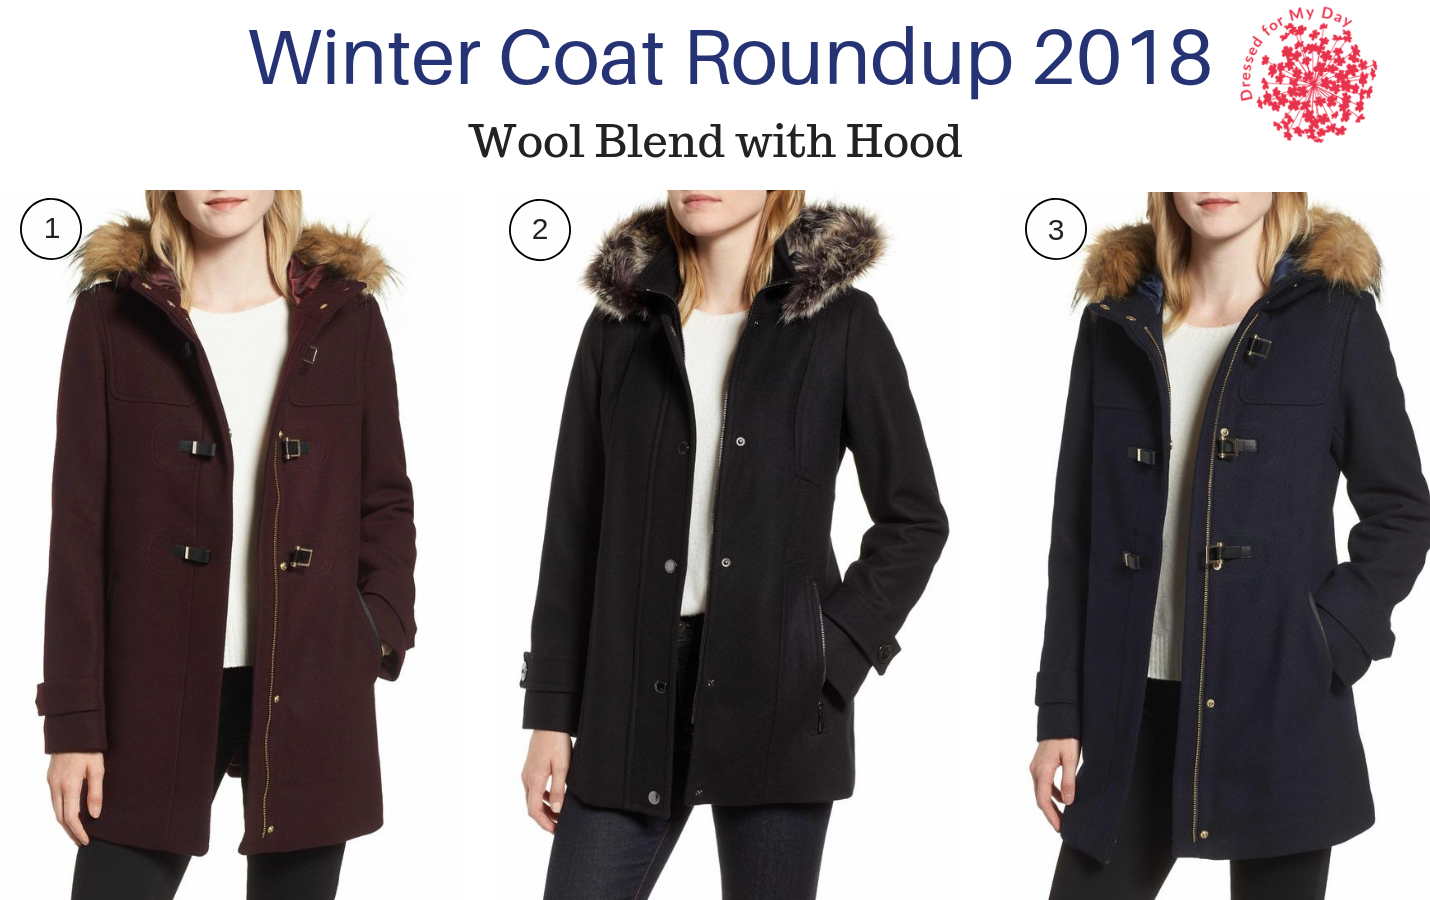 Winter Coat Roundup 2018 Wool Blend with Hood